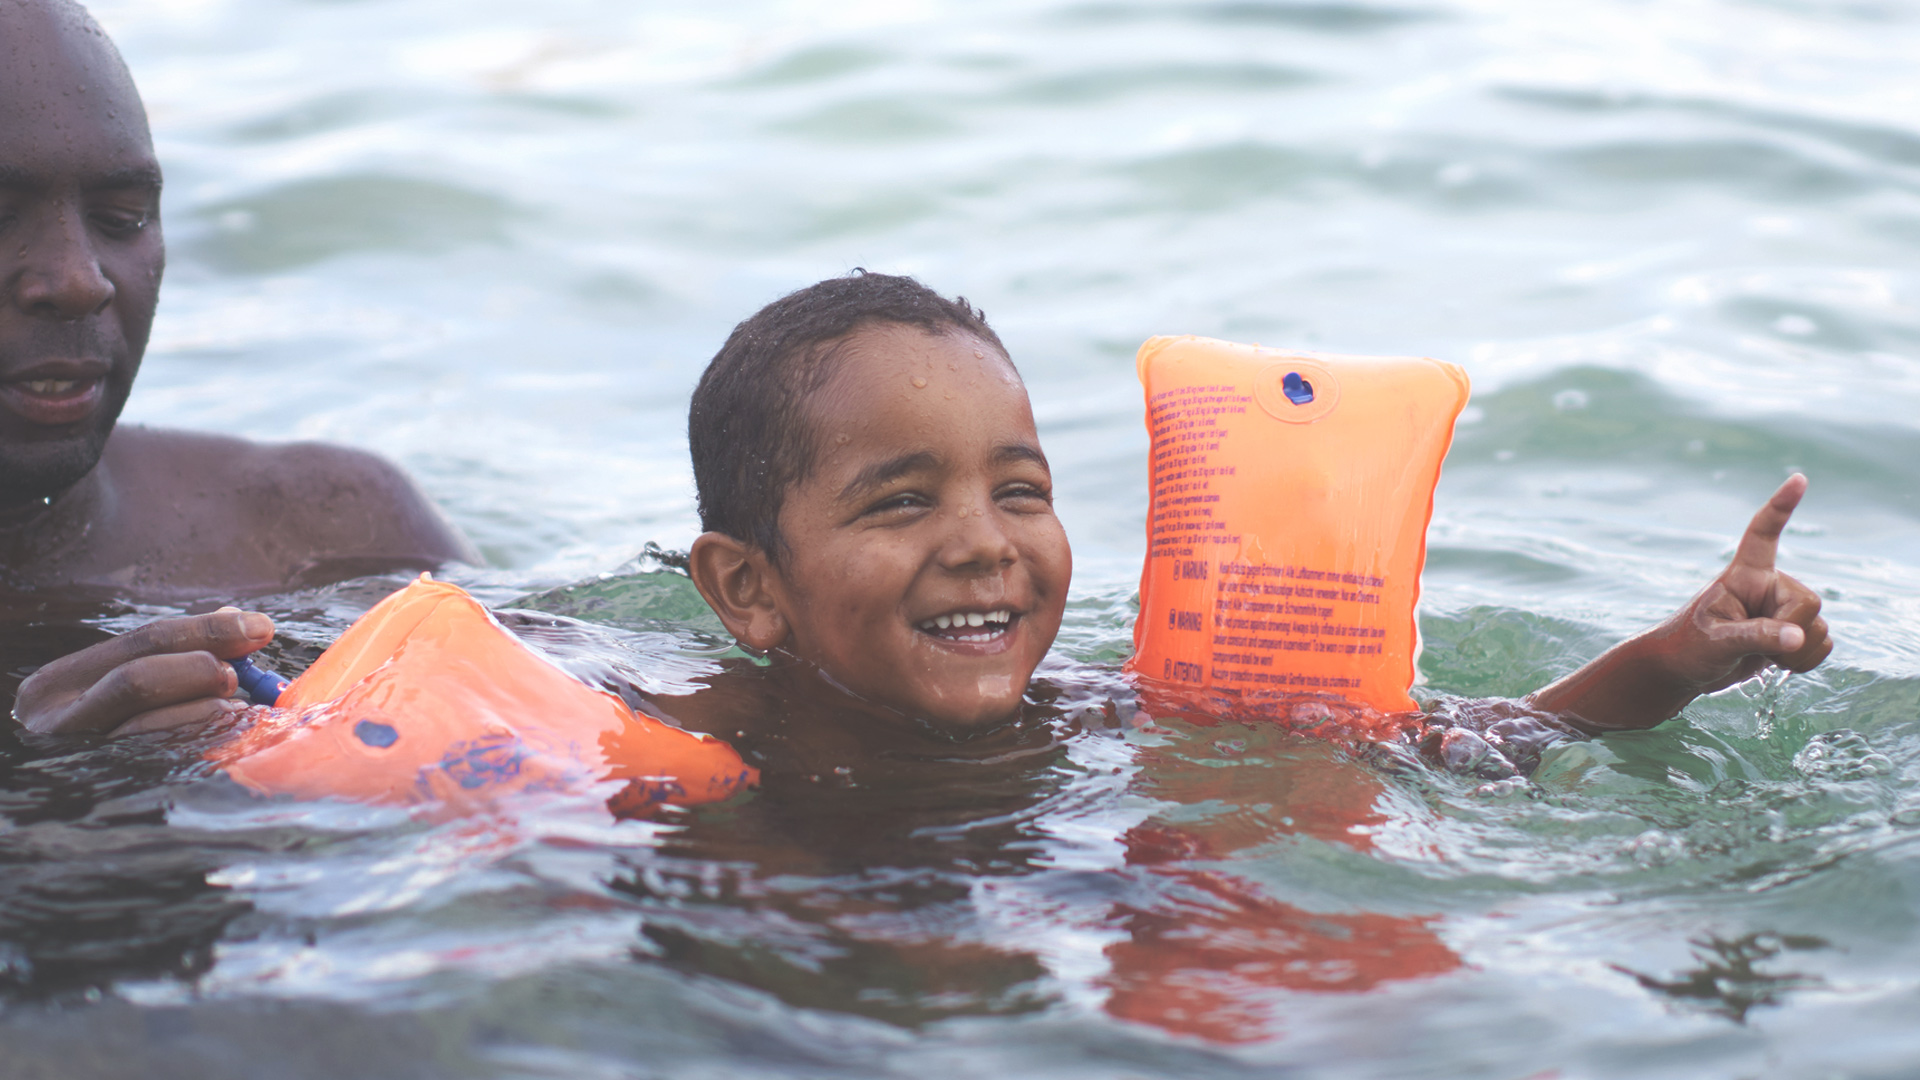 Boy with floaties in the water